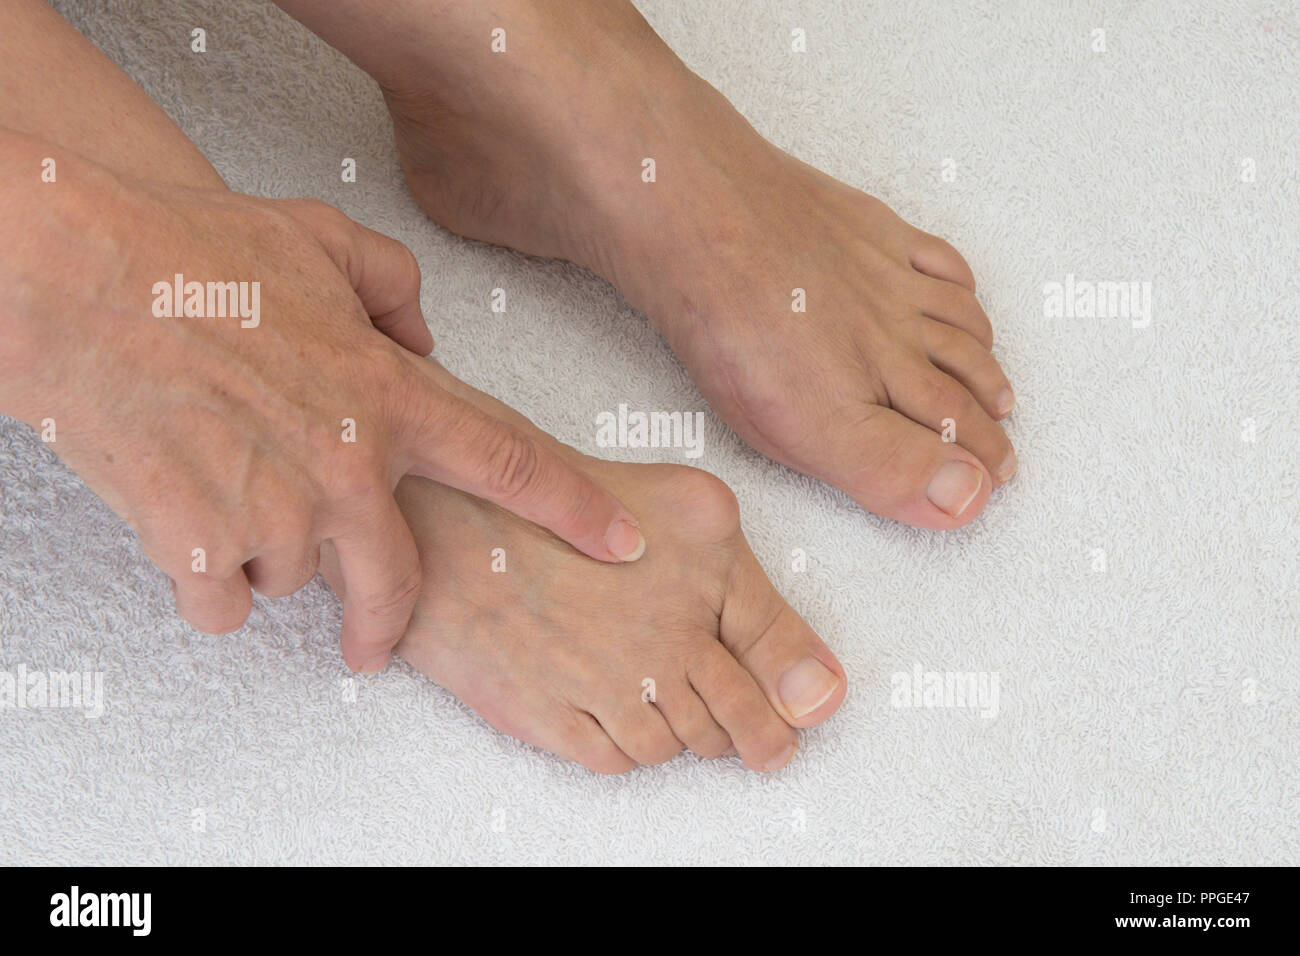 bunion on joint of big toe, before and after operation, comparison of one foot with bunion removed and other yet to be done, hand rubbing swelling. - Stock Image